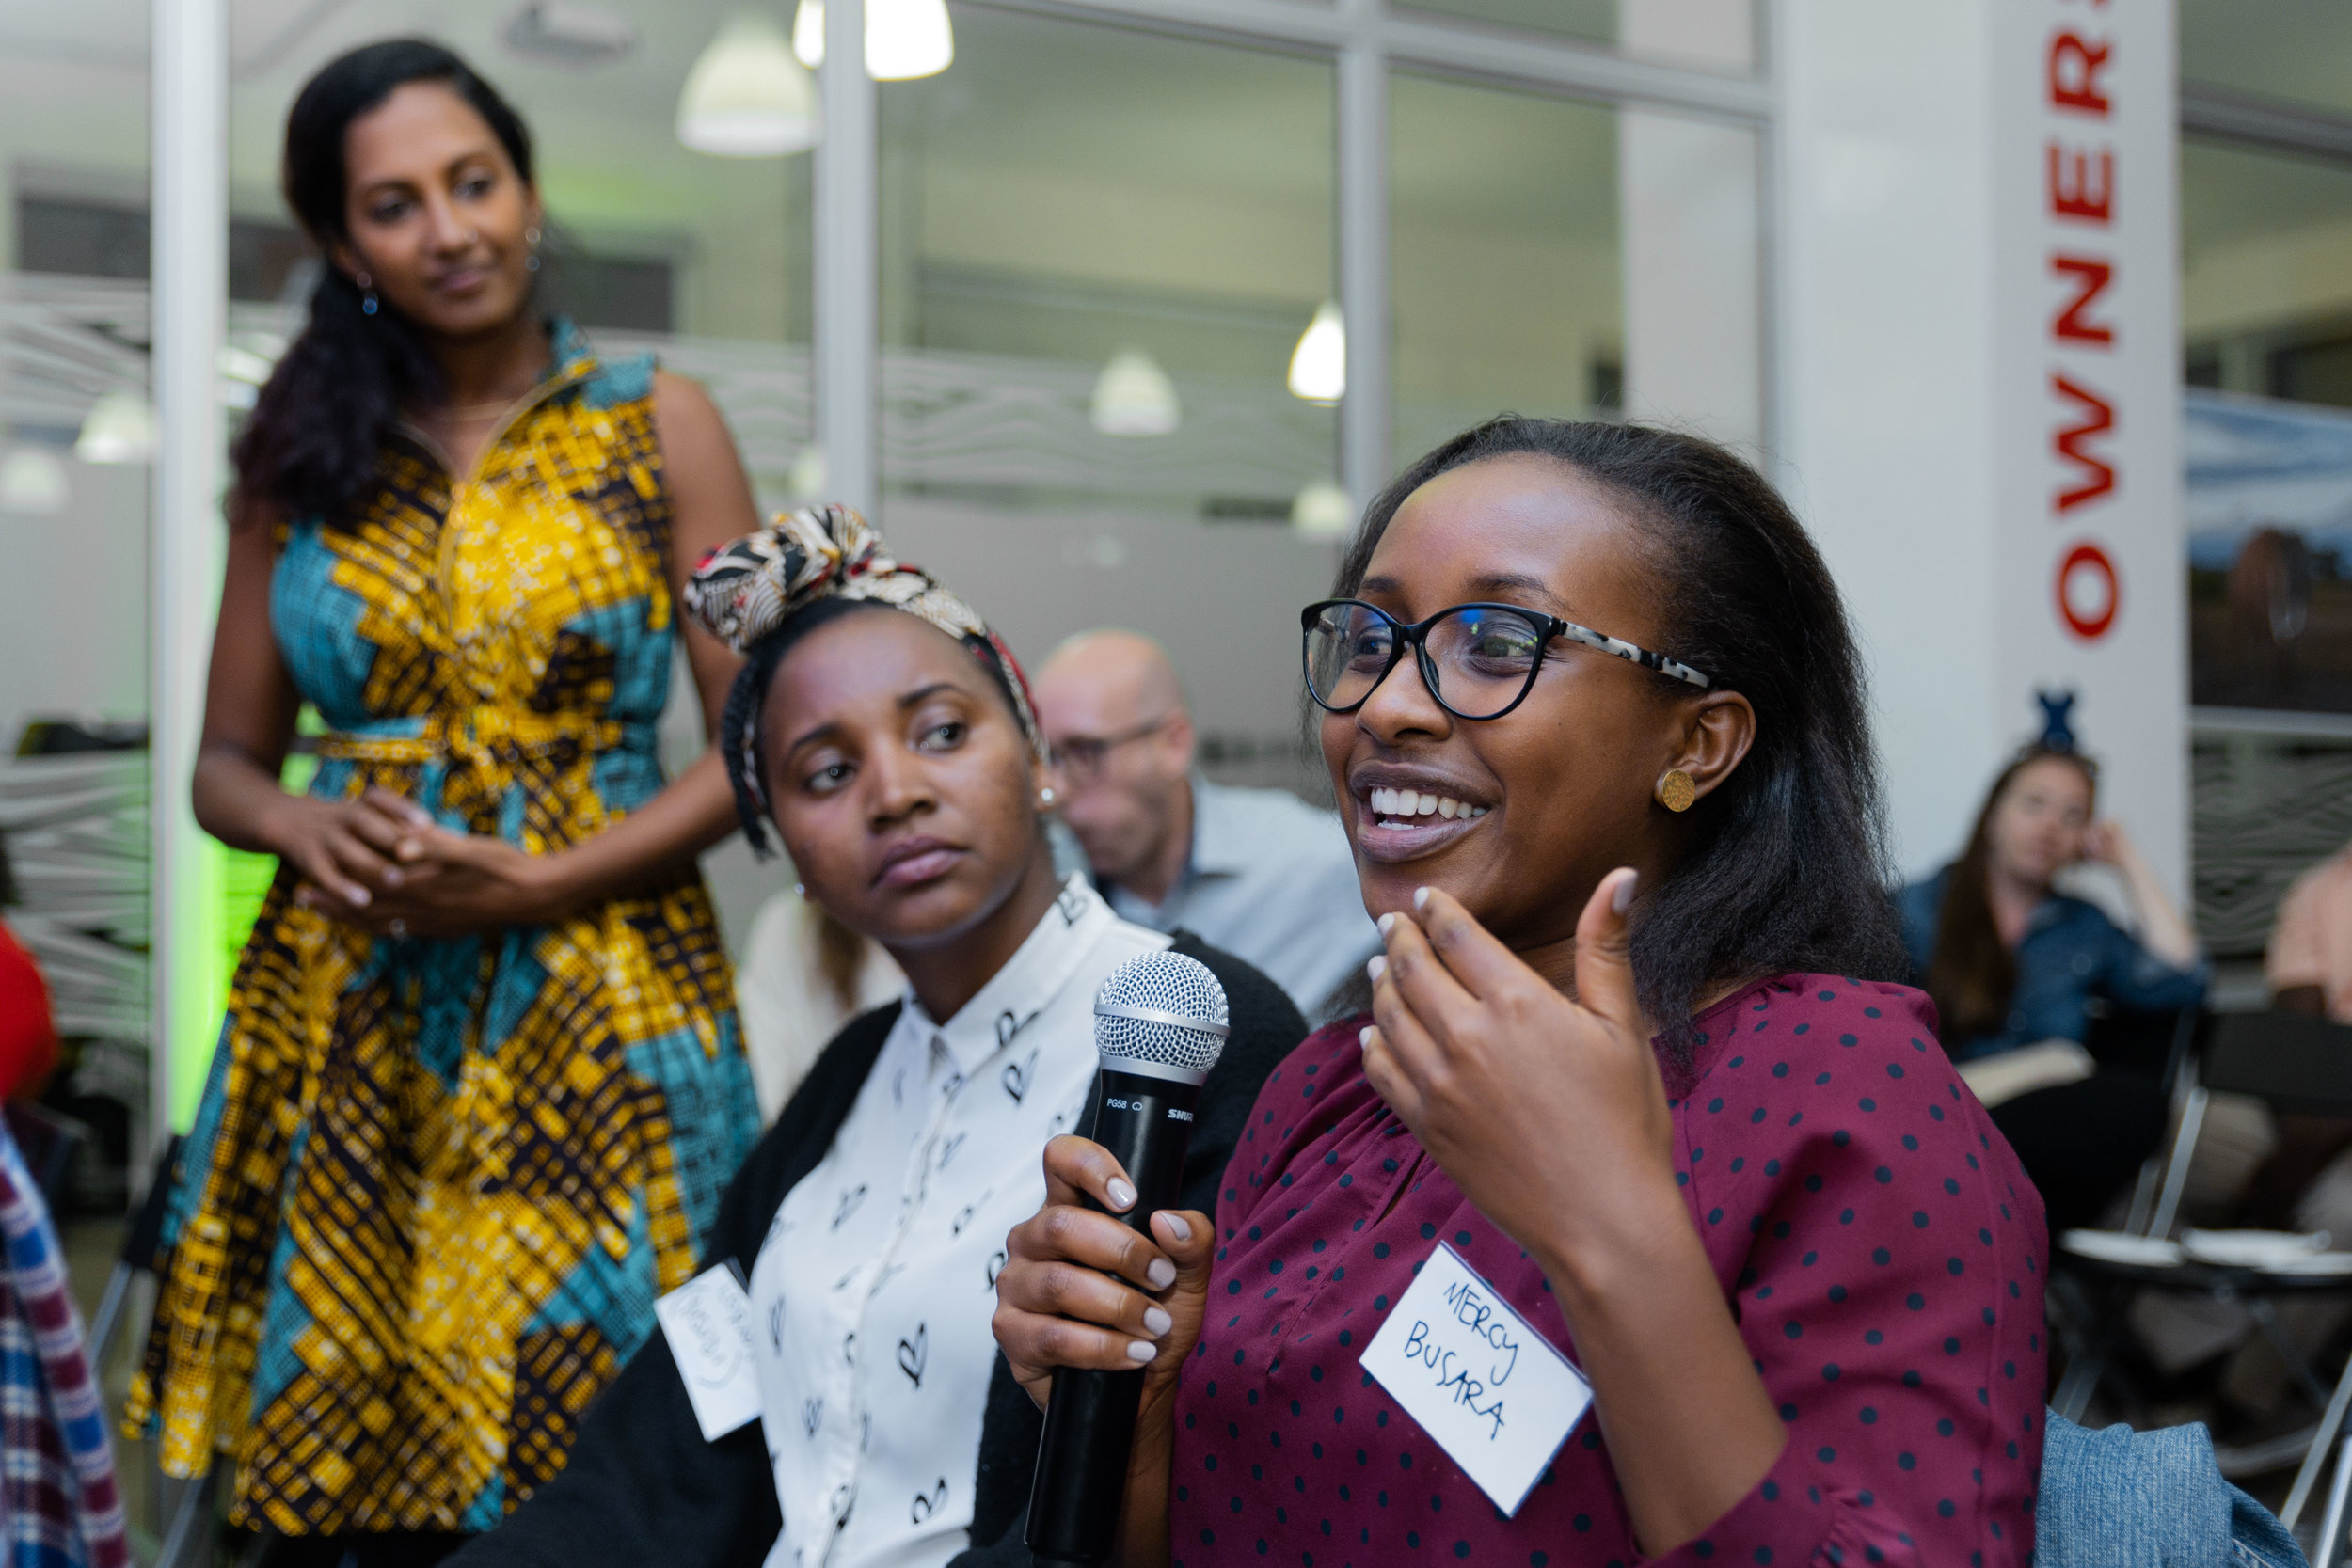 Metis hosts quarterly events for Nairobi's education ecosystem. - Sign up to stay in the loop!